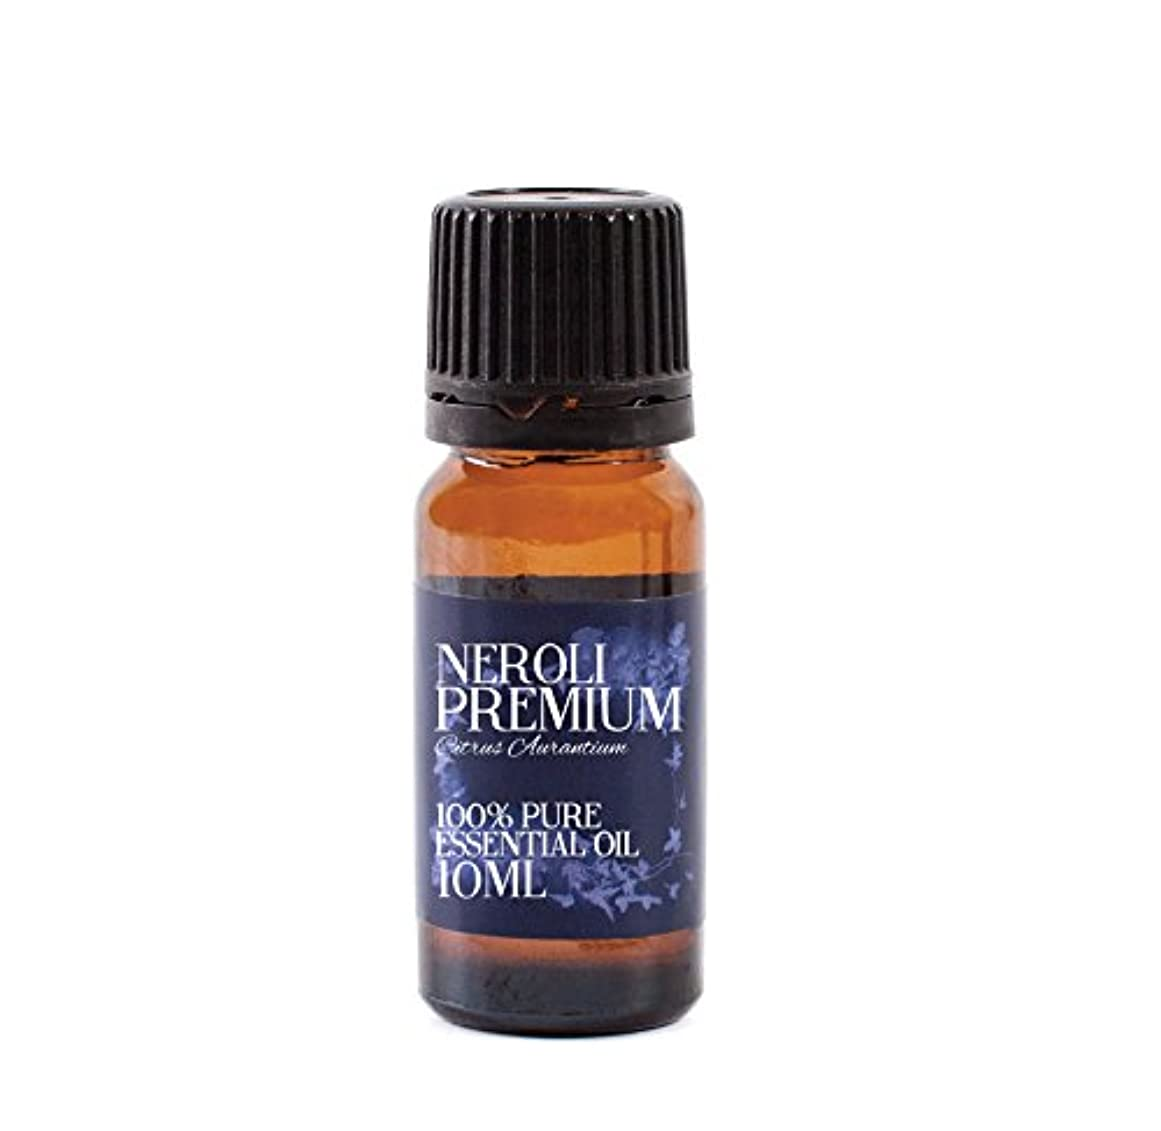 Mystic Moments | Neroli Premium Essential Oil - 10ml - 100% Pure